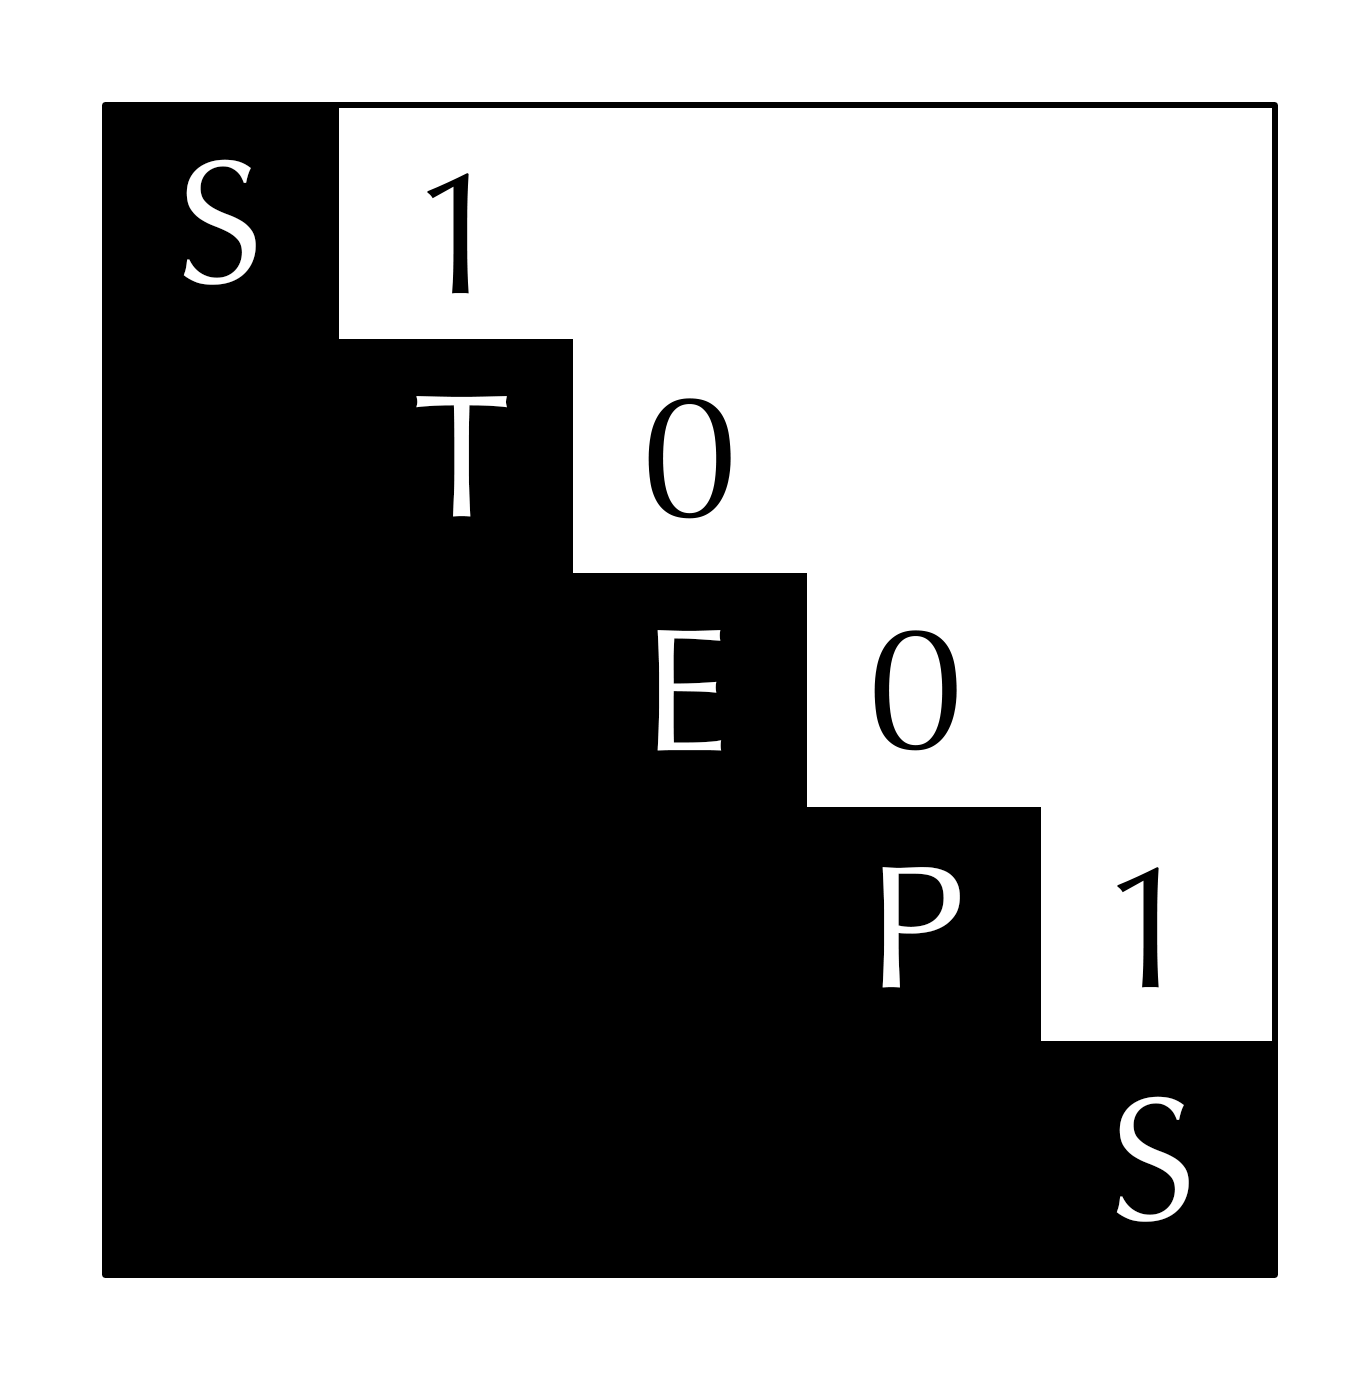 1001 Steps Theatre Society